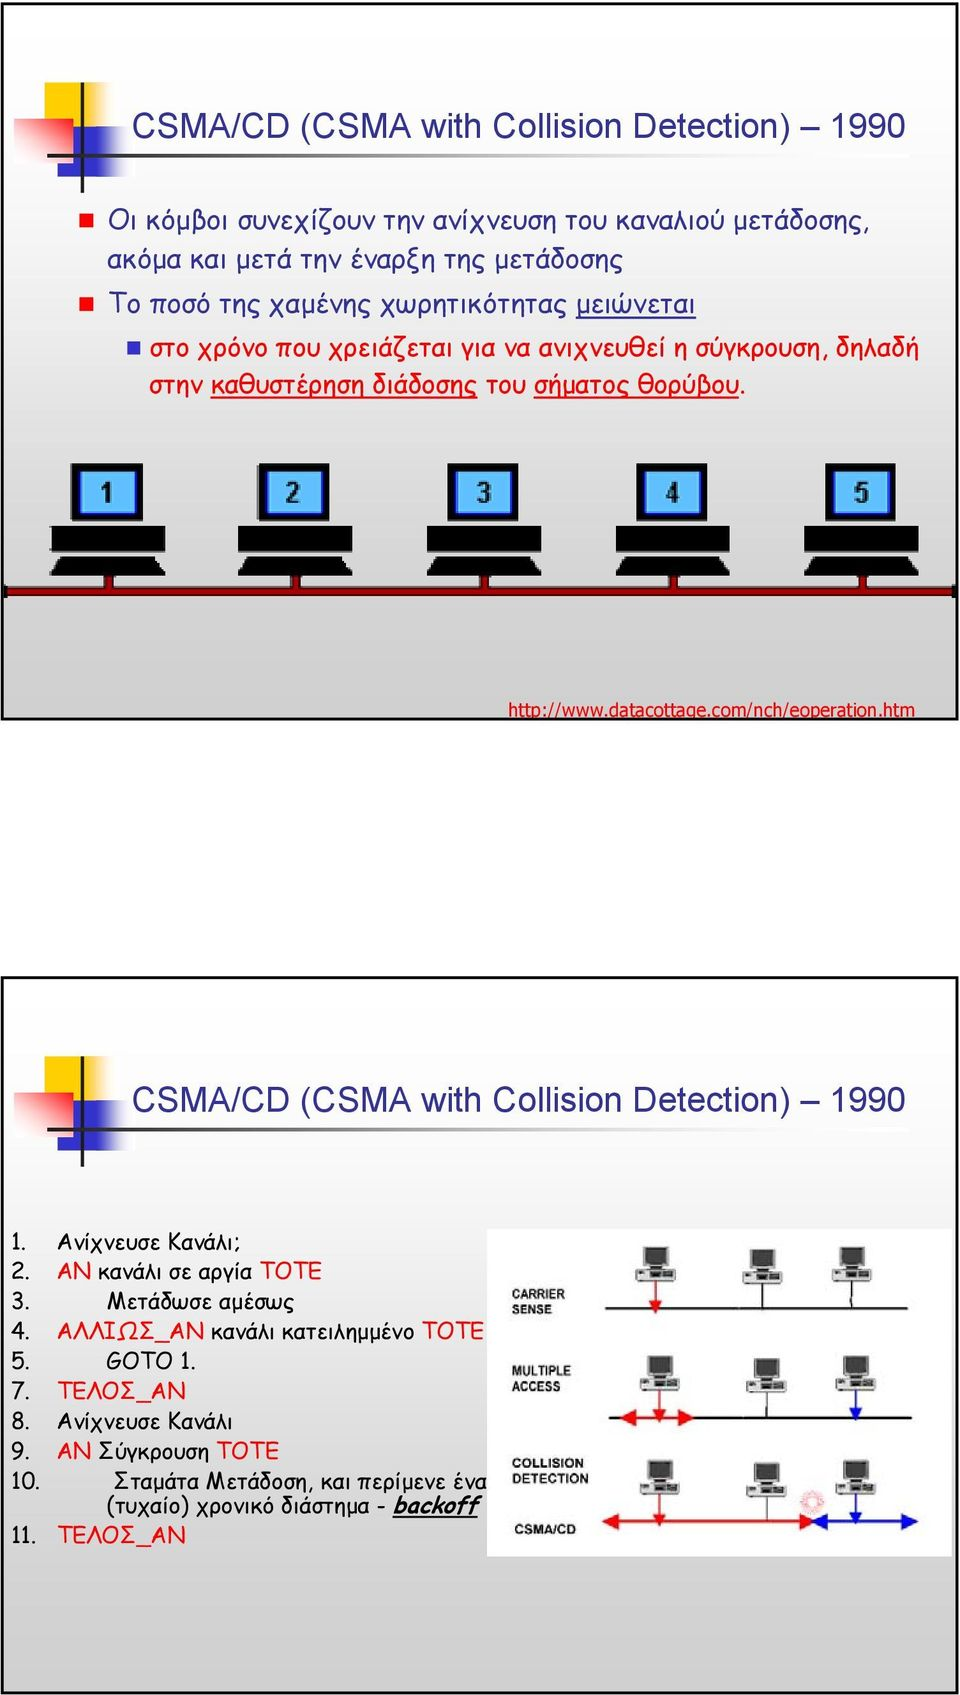 datacottage.com/nch/eoperation.htm CSMA/CD (CSMA with Collision Detection) 1990 1. Ανίχνευσε Κανάλι; 2. ΑΝ κανάλι σε αργία ΤΟΤΕ 3. Μετάδωσε αµέσως 4.